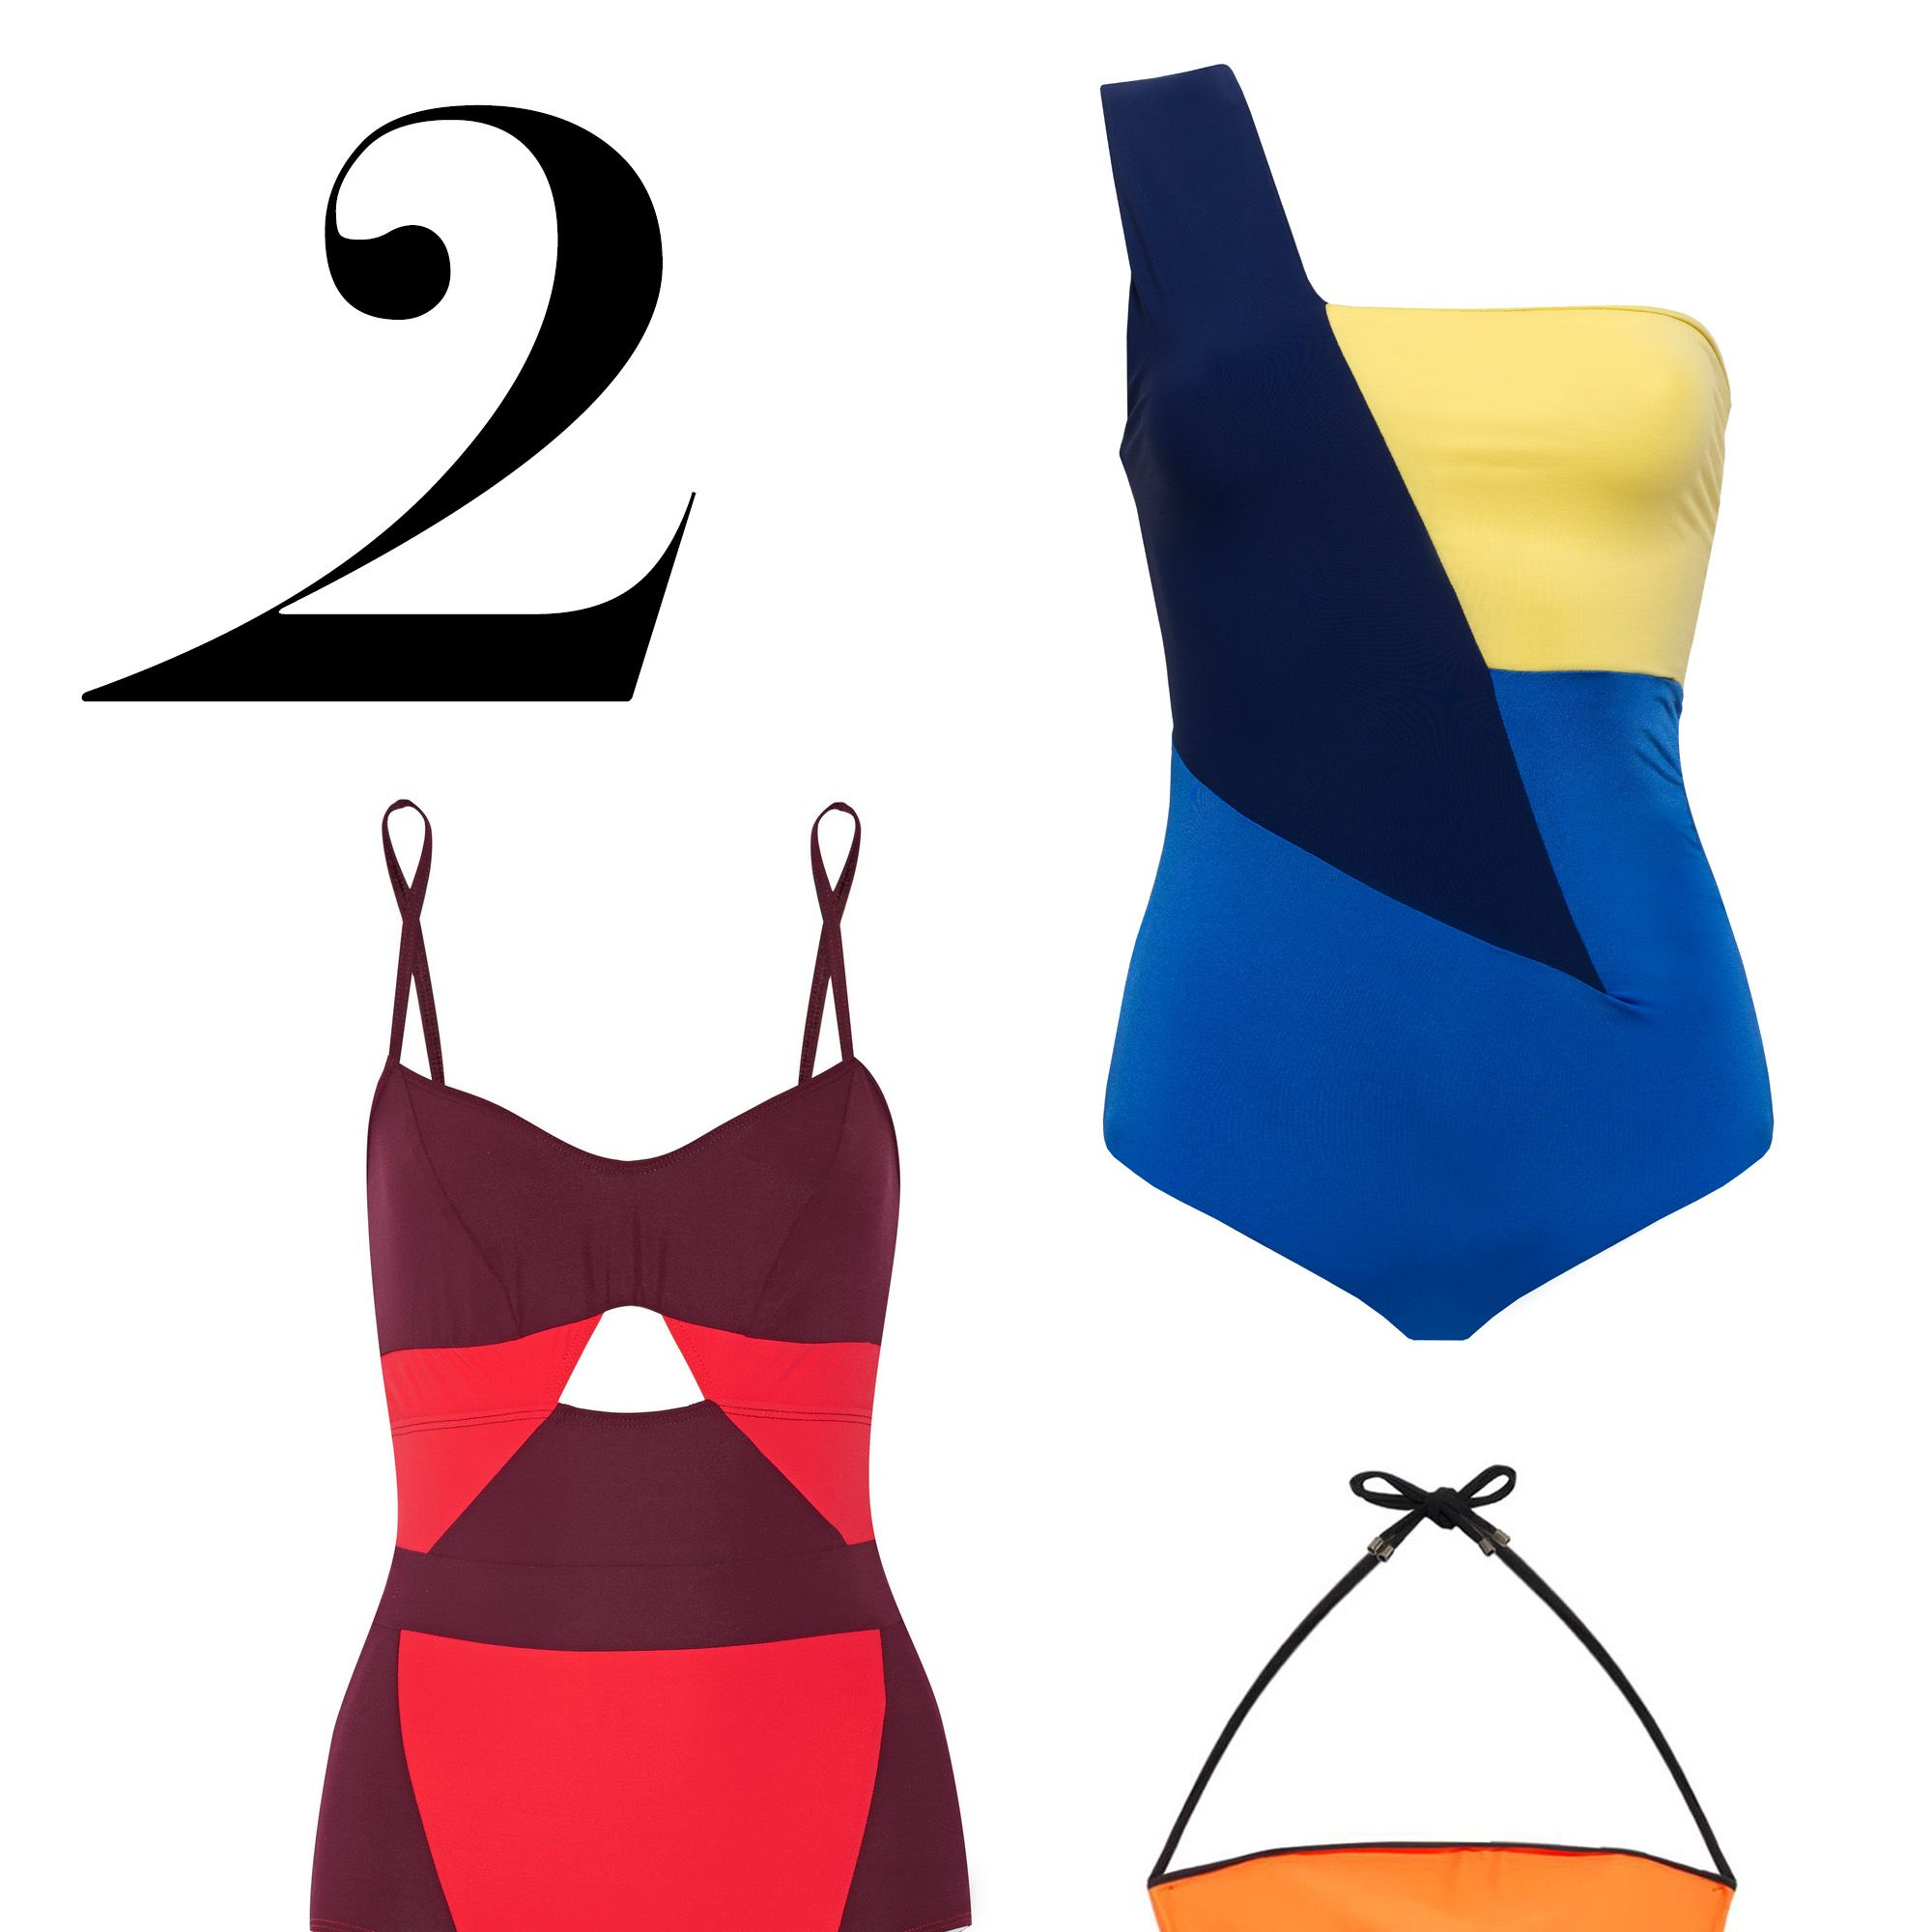 """Color-blocking feels modern in one-pieces that flatter and leverage the right angles—quite literally. <em>Do Paris bathing suit, $242, <a target=""""_blank"""" href=""""http://www.do-paris.com/"""">do-paris.com</a>&#x3B; Roksanda swim, $495, <a target=""""_blank"""" href=""""http://www.matchesfashion.com/product/1015746"""">matchesfashion.com</a>&#x3B; FLAGPOLE SWIM, $400, <a target=""""_blank"""" href=""""http://www.net-a-porter.com/us/en/product/527540"""">net-a-porter.com</a></em>"""